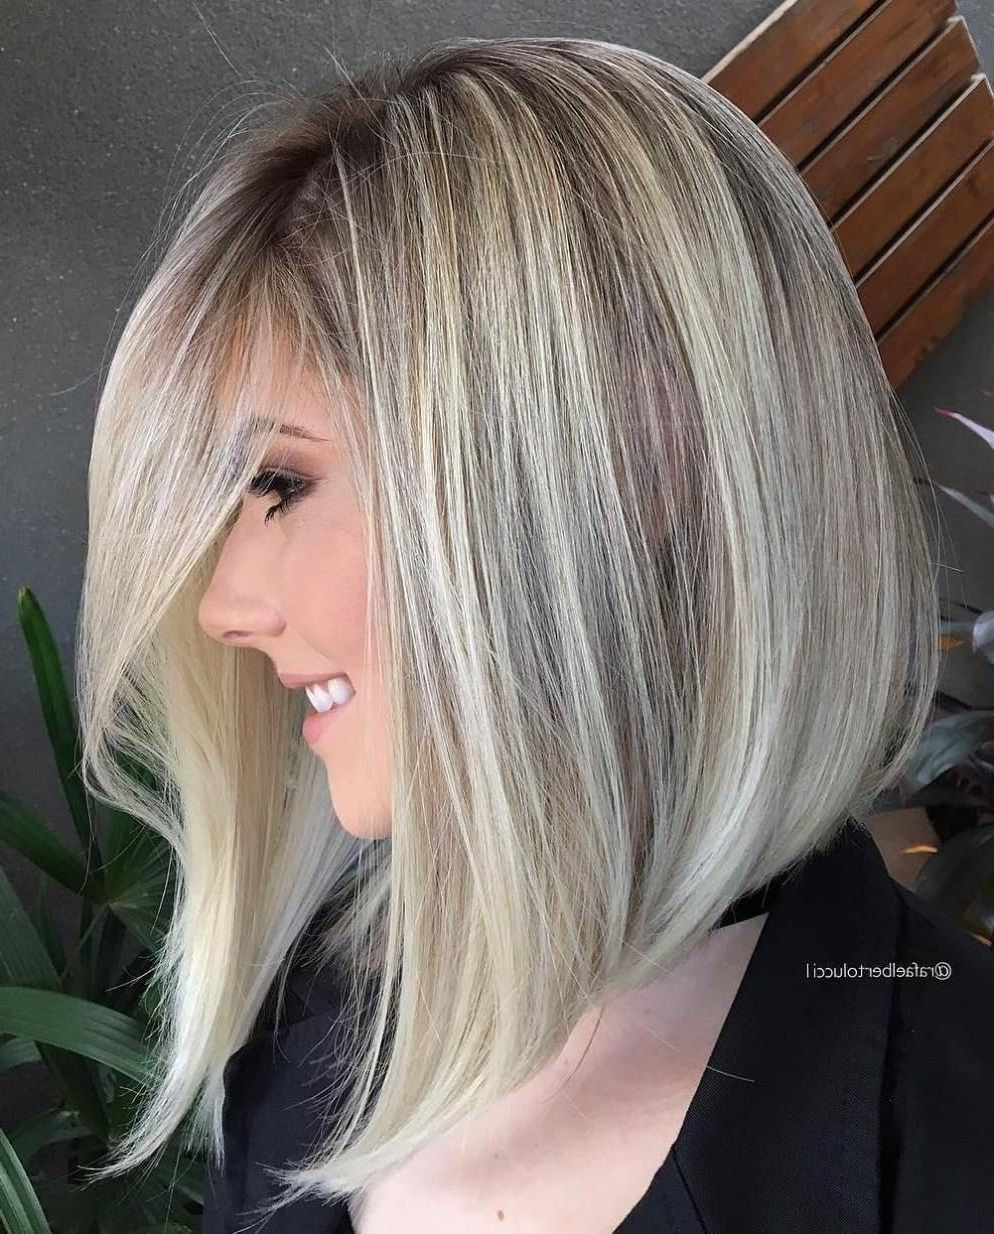 Well Liked Striking Angled Platinum Lob Blonde Hairstyles With Regard To 40 Styles With Medium Blonde Hair For Major Inspiration (View 19 of 20)